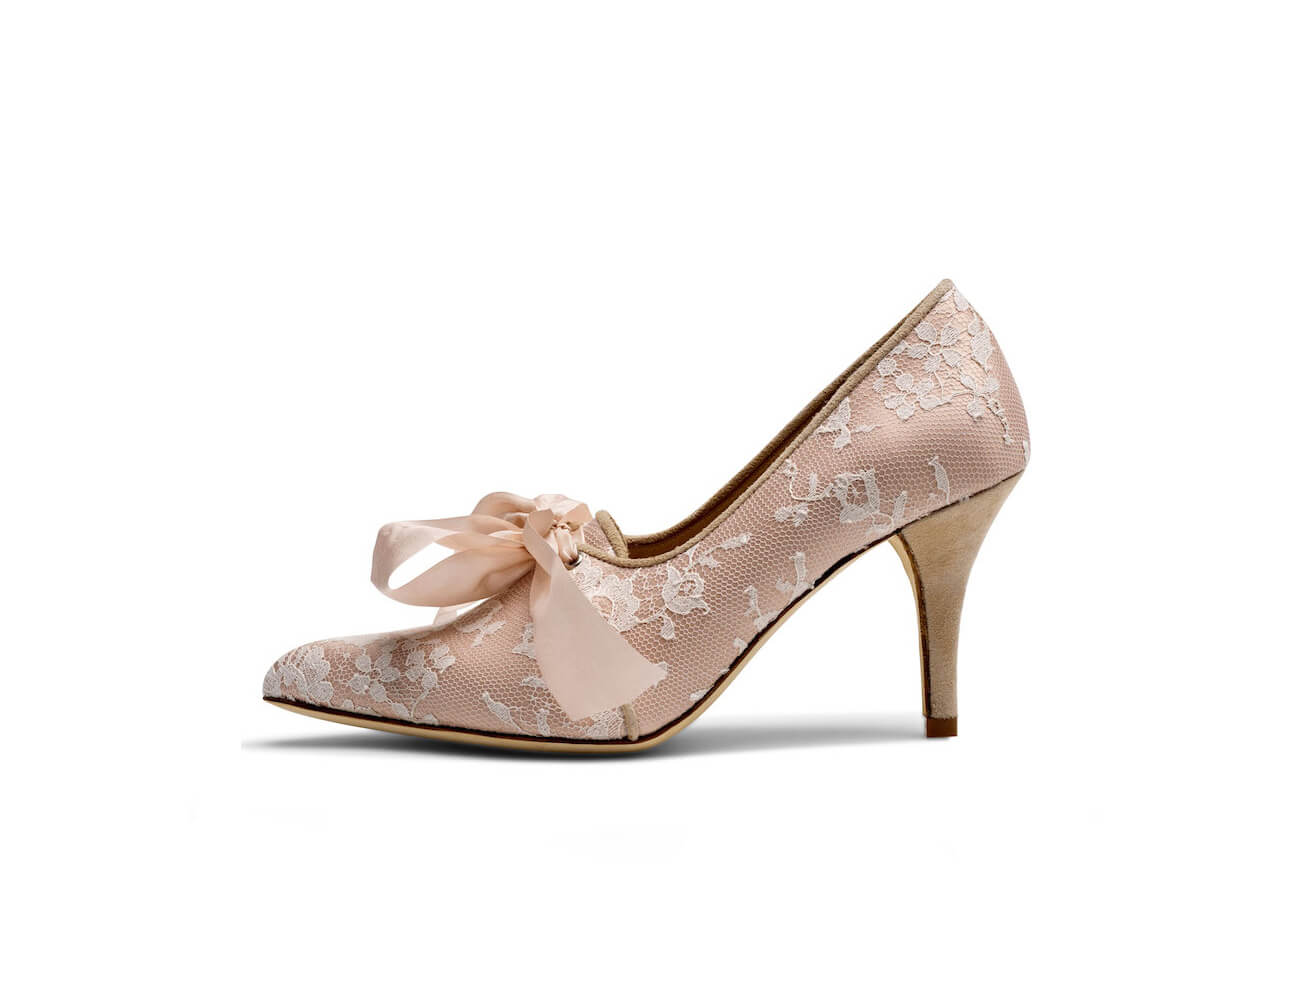 Blush coloured silk and ivory lace wedding shoe with silk bow